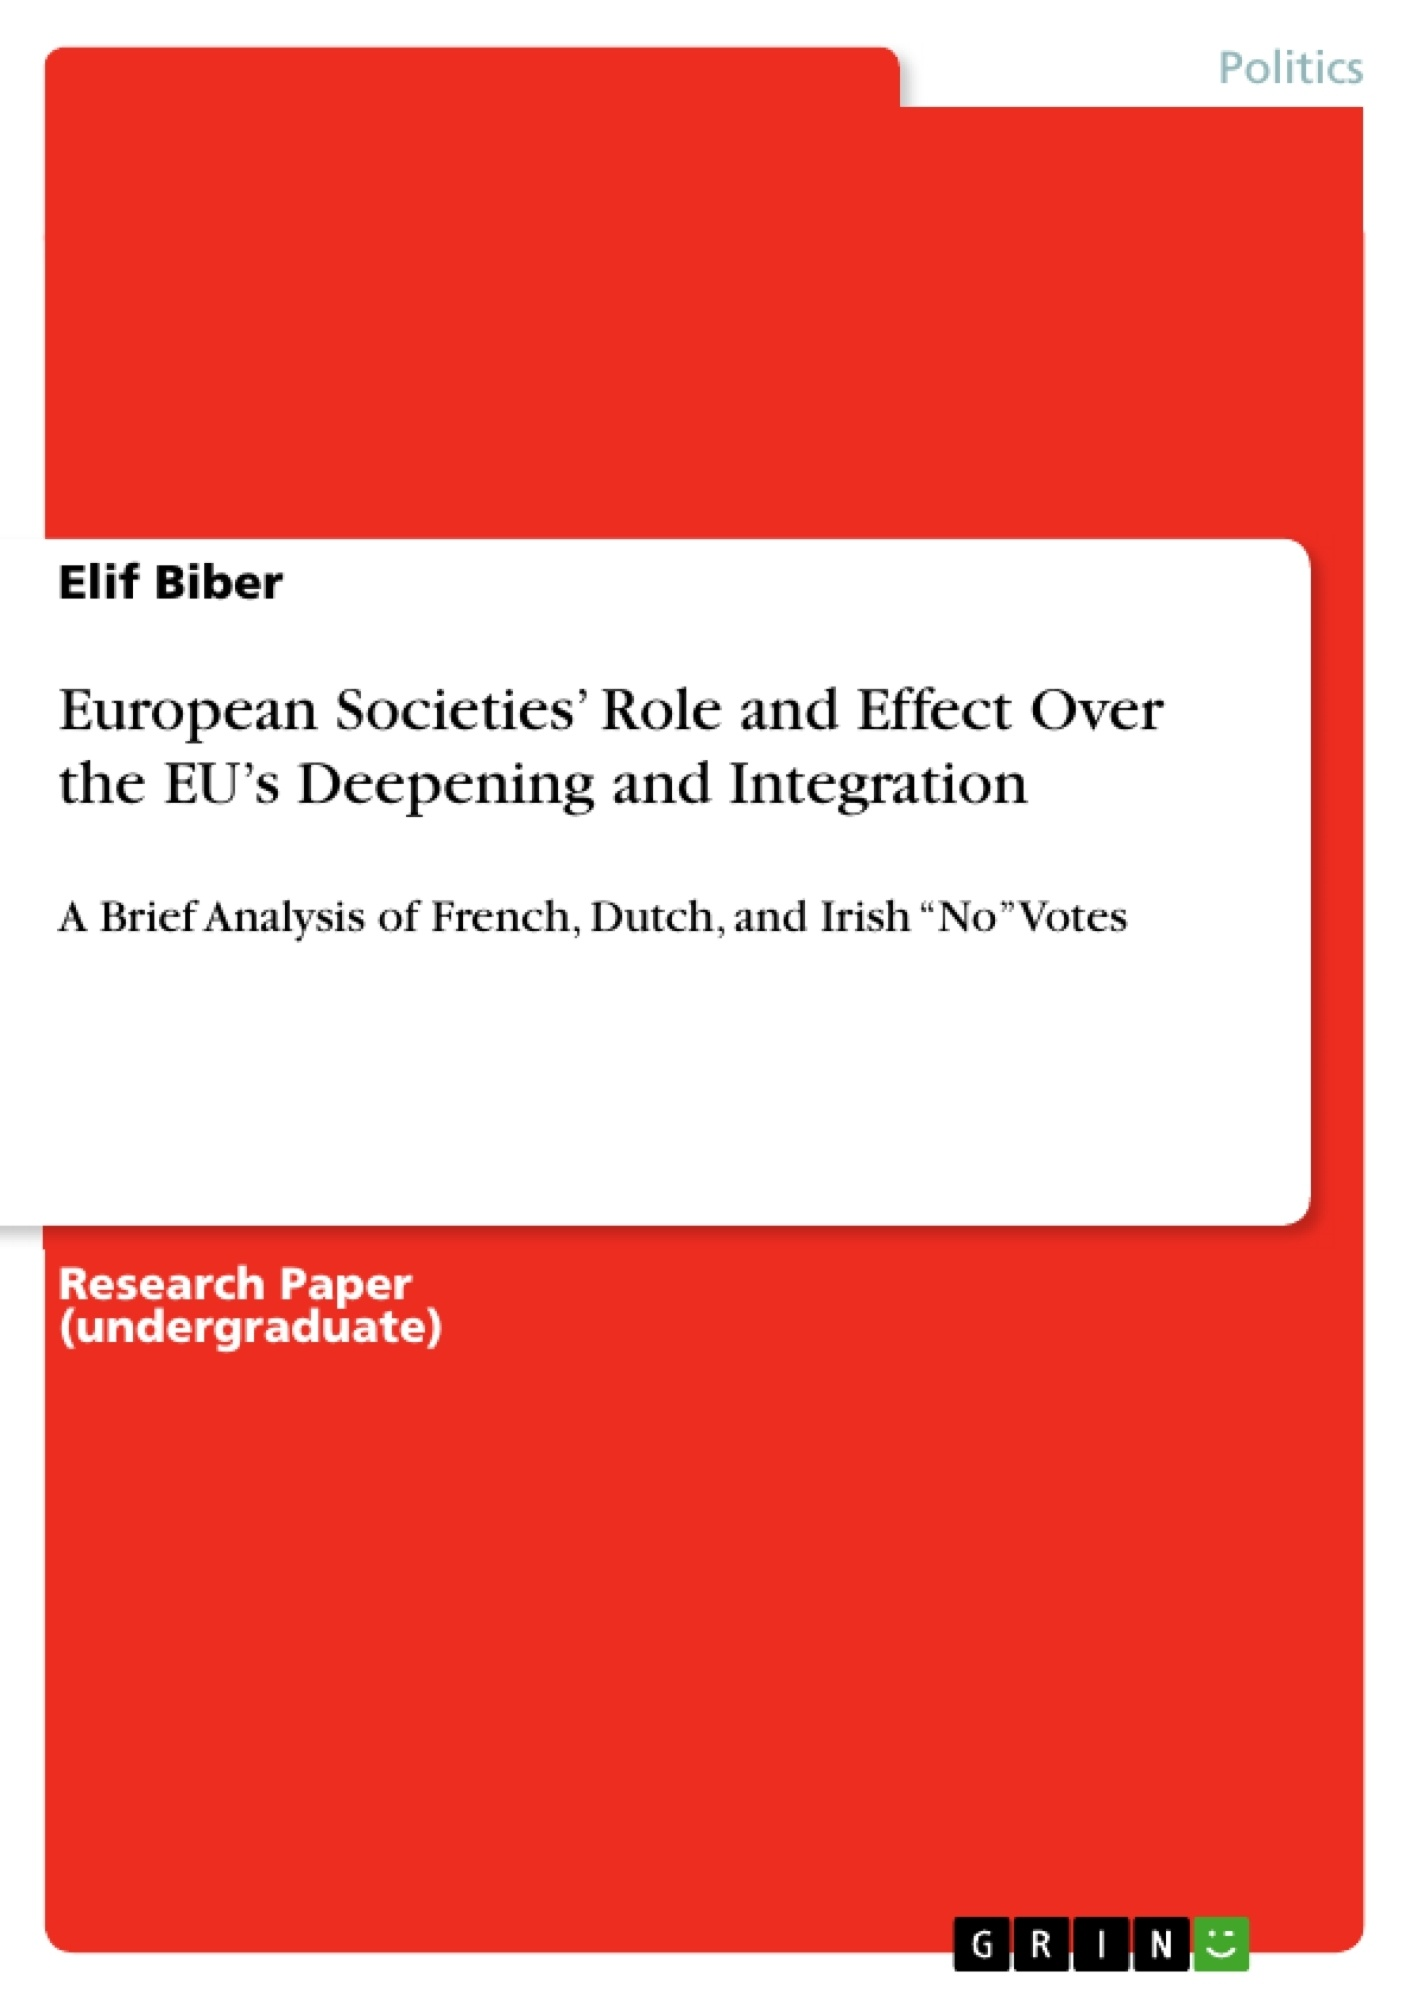 Title: European Societies' Role and Effect Over the EU's Deepening and Integration